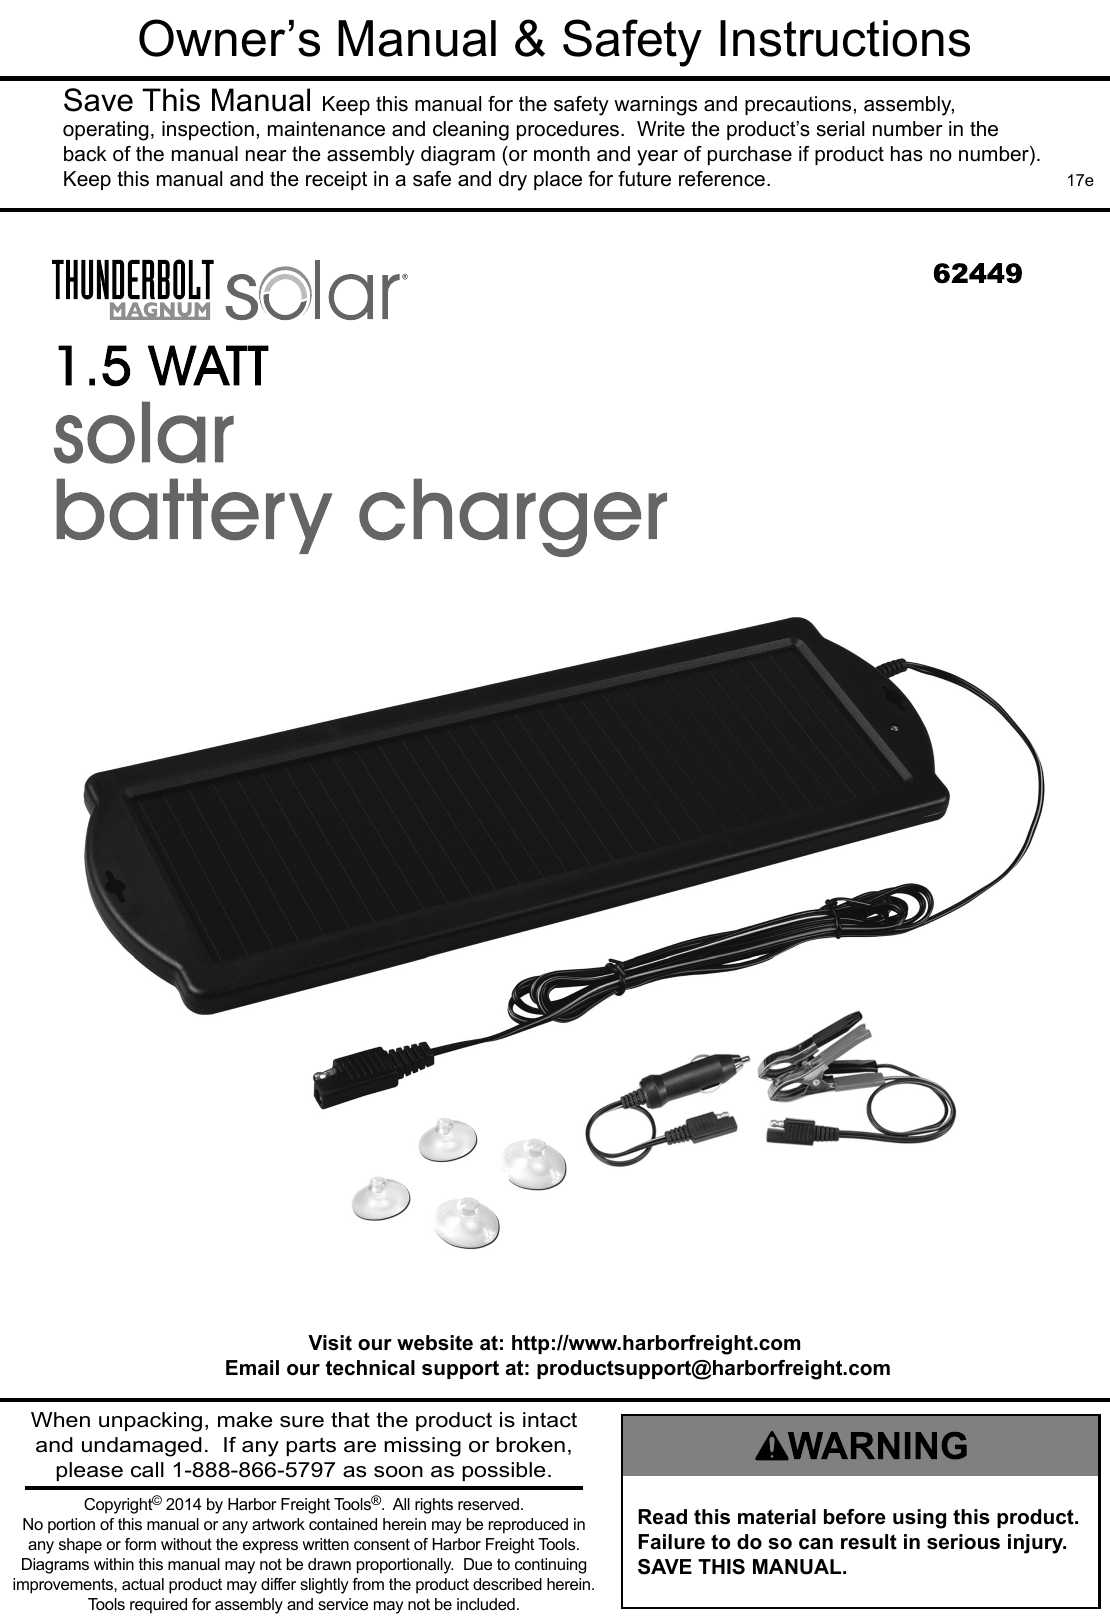 Manual For The 62449 1 5 Watt Solar Battery Charger